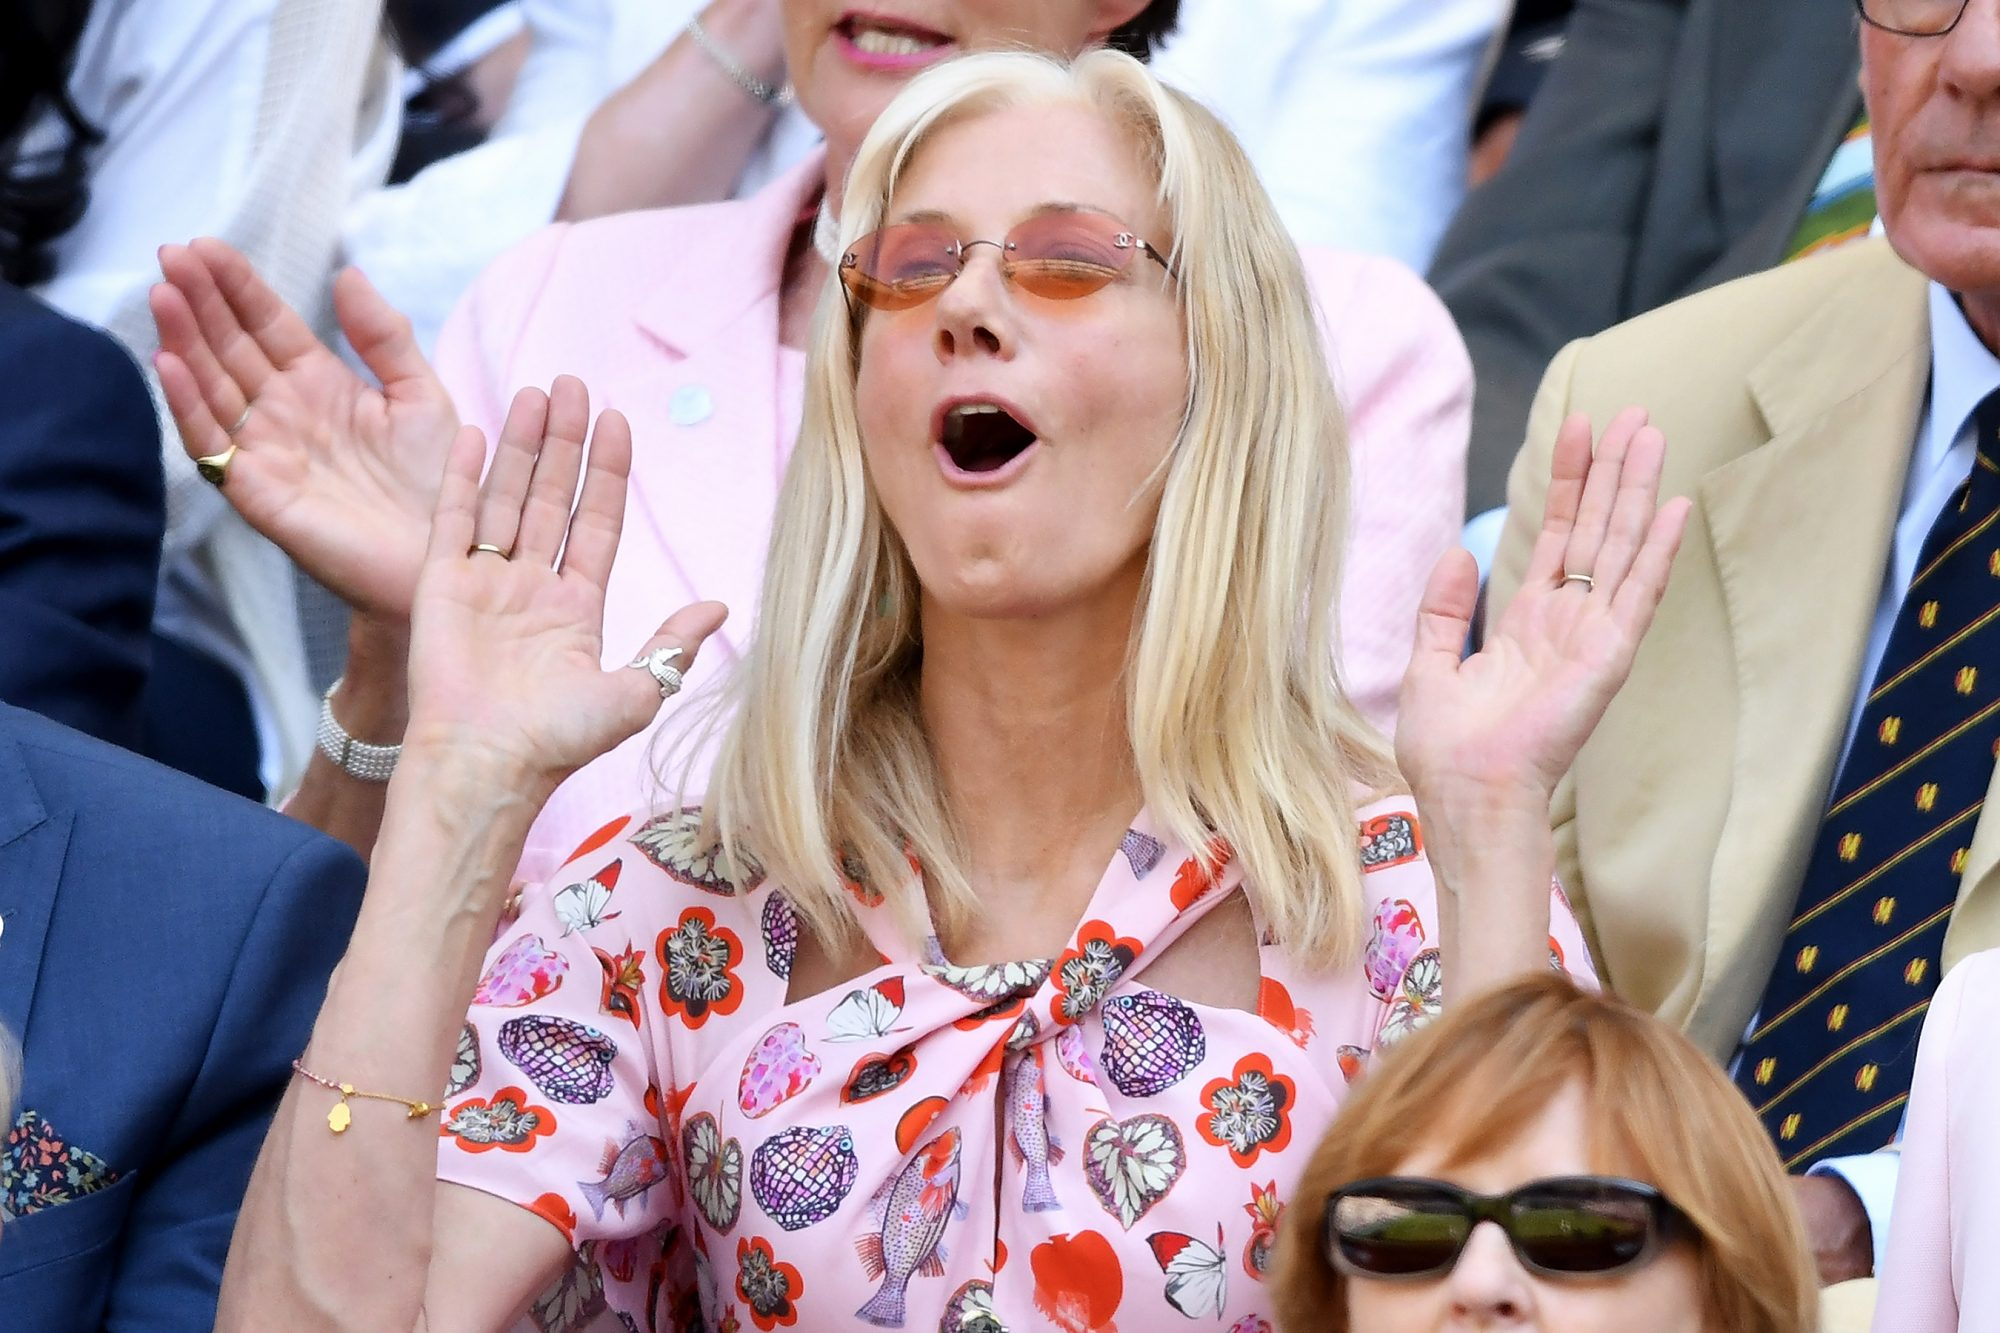 Serena's Not the Only Star: See All of the Celebrities at Wimbledon